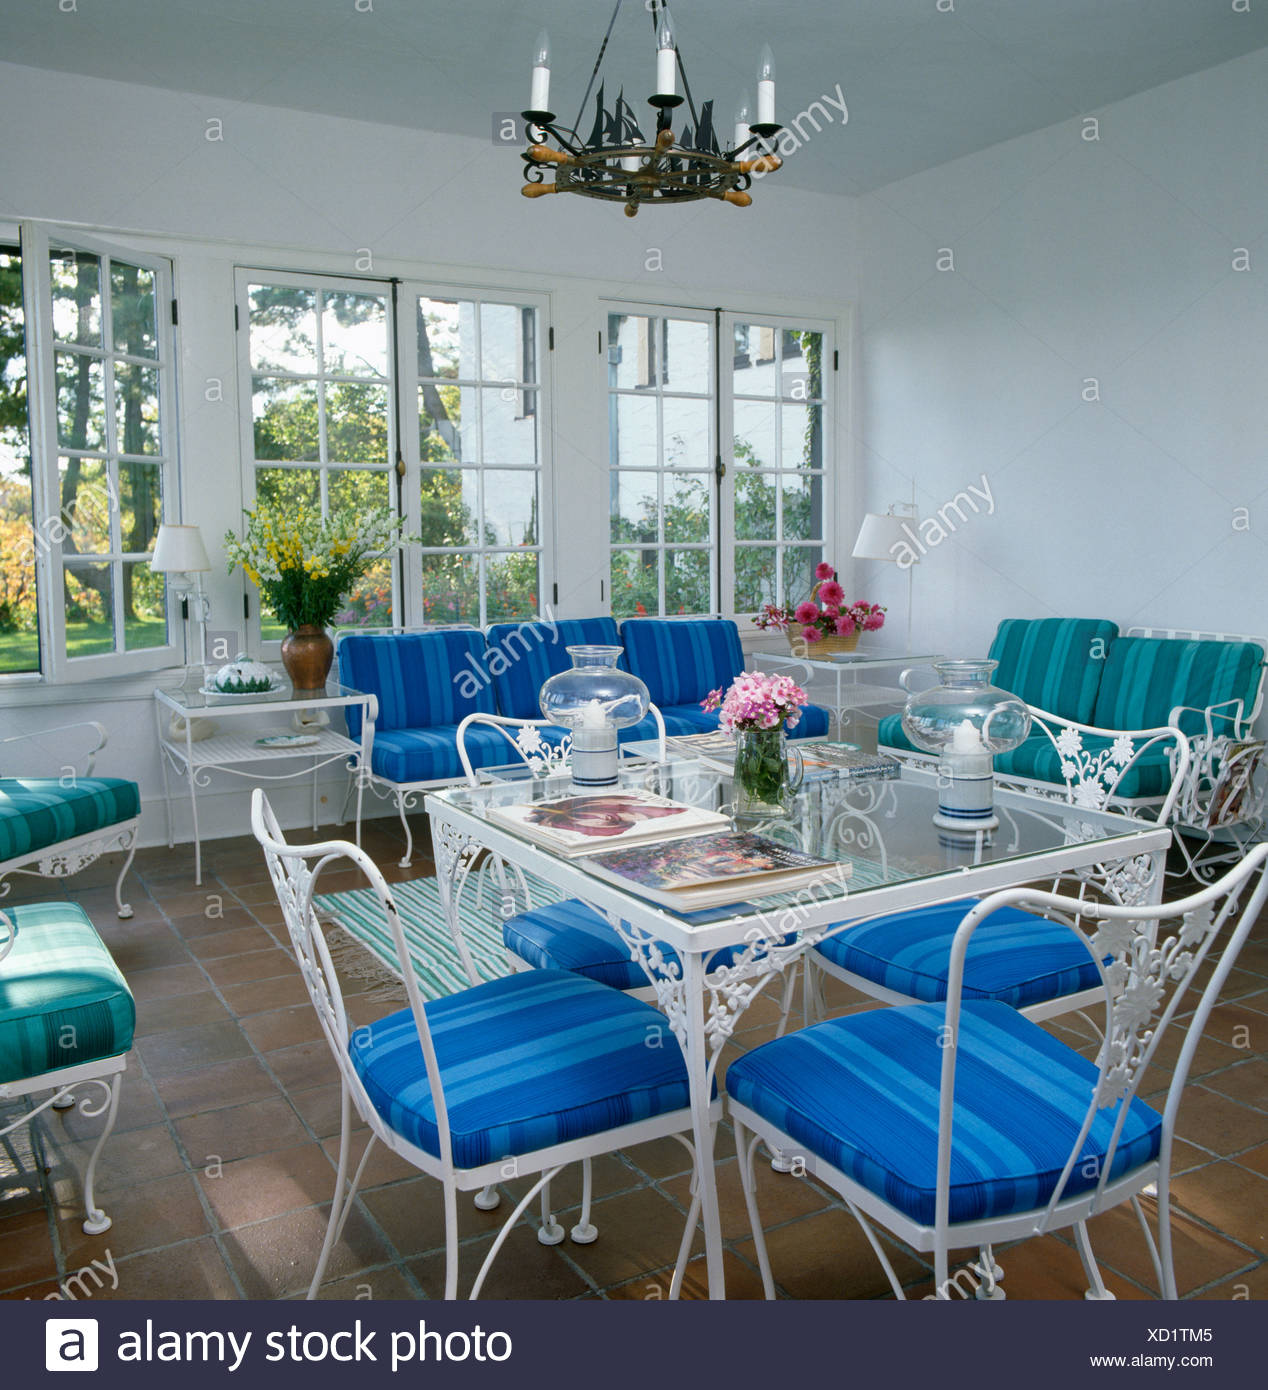 Interiors Diningroom Chair Table Stockfotos & Interiors Diningroom ...